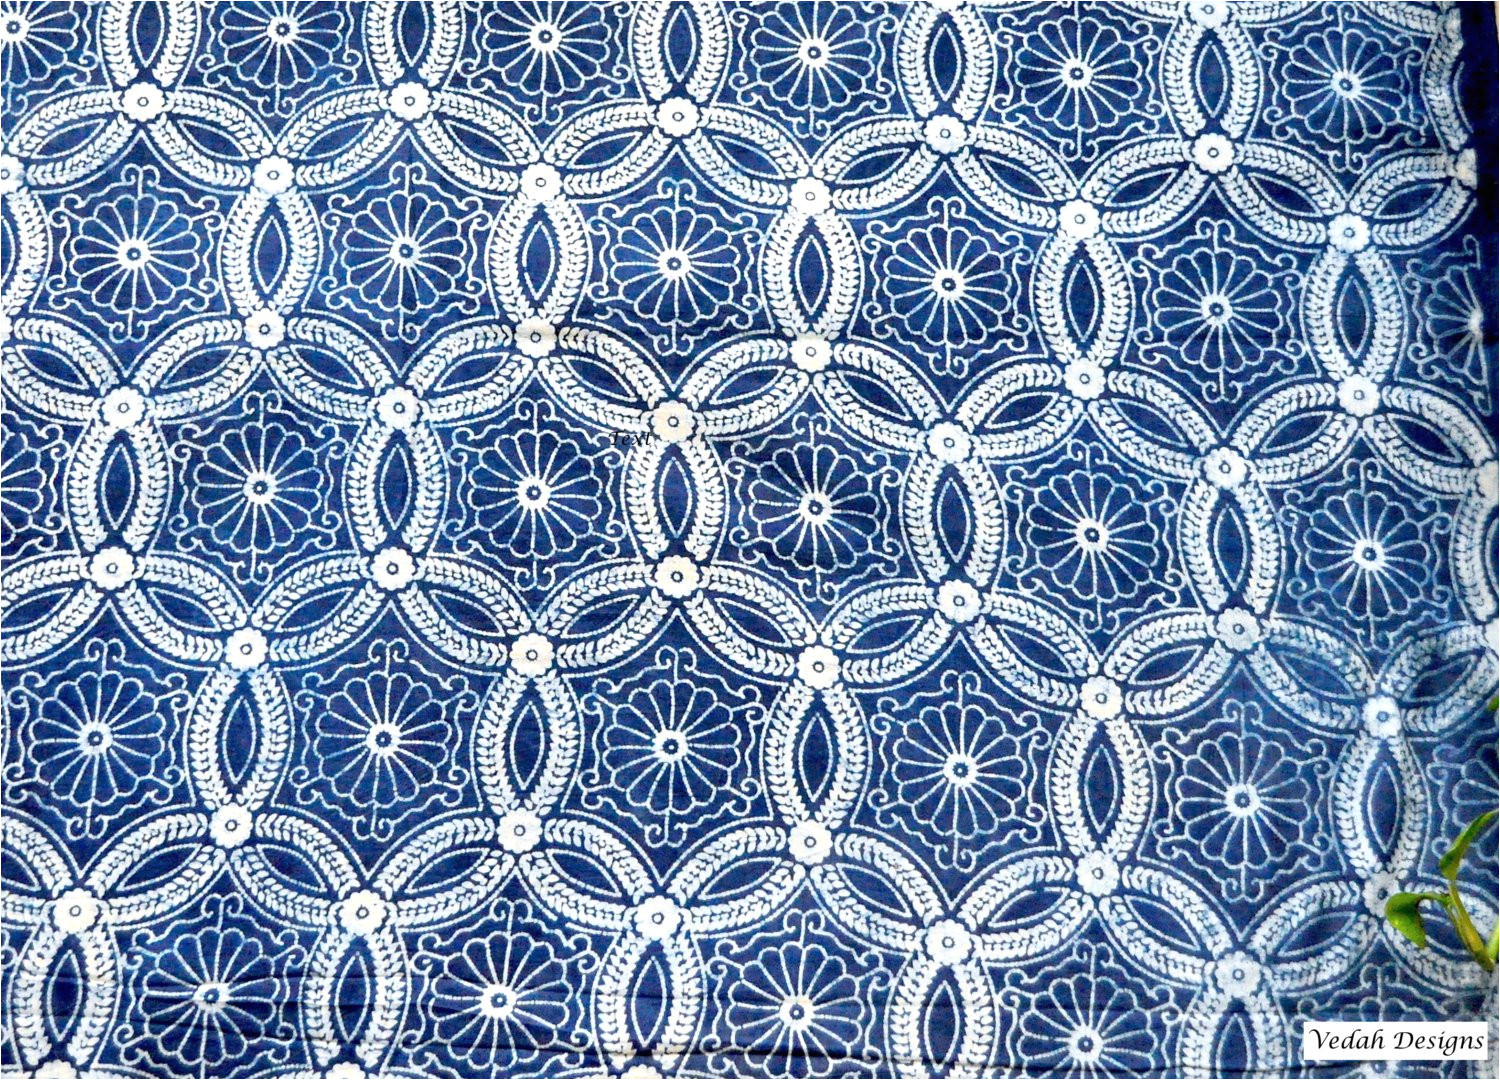 Mudcloth Print Fabric by the Yard Moroccan Design Indigo Fabric Mudcloth Block Print Fabric by Etsy